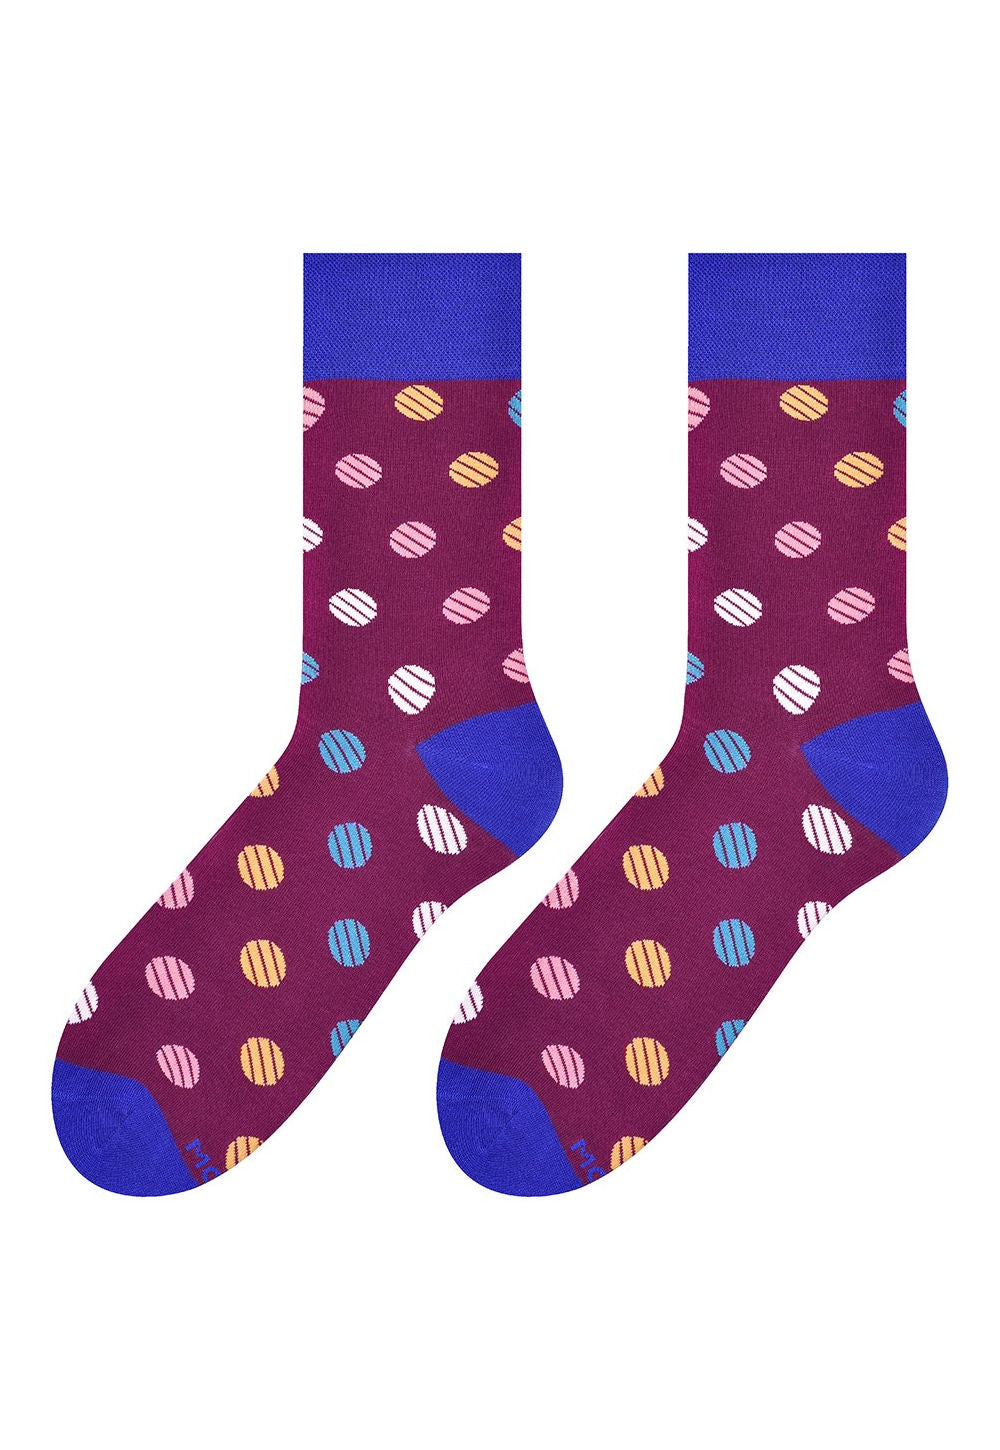 Striped Dots Patterned Socks in Burgundy by More in burgundy maroon red